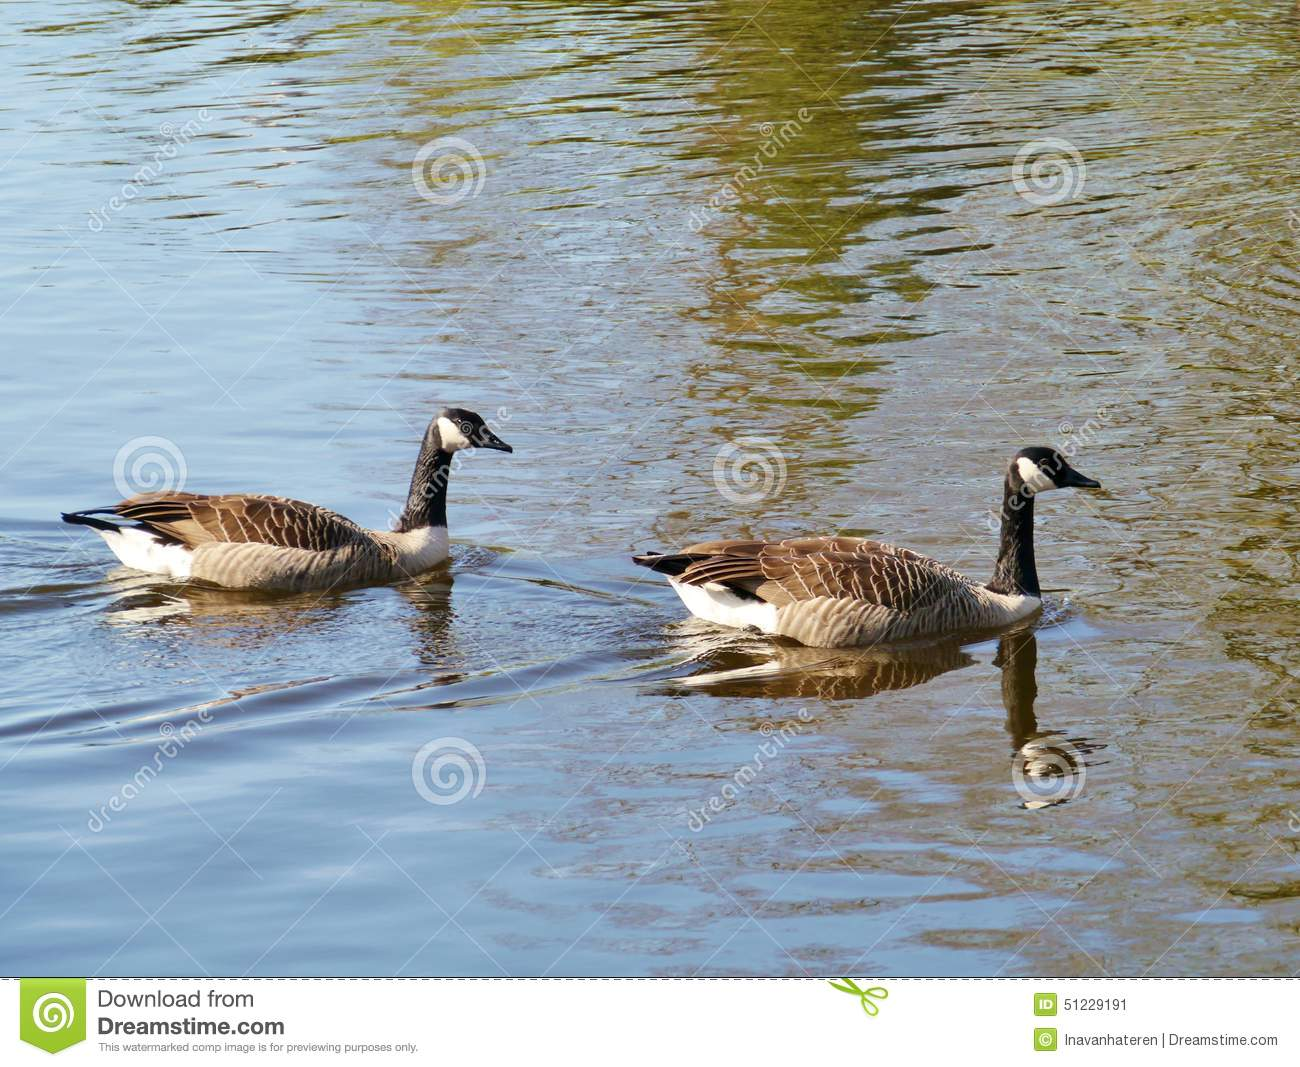 Two Canadian geese swimming in a pool